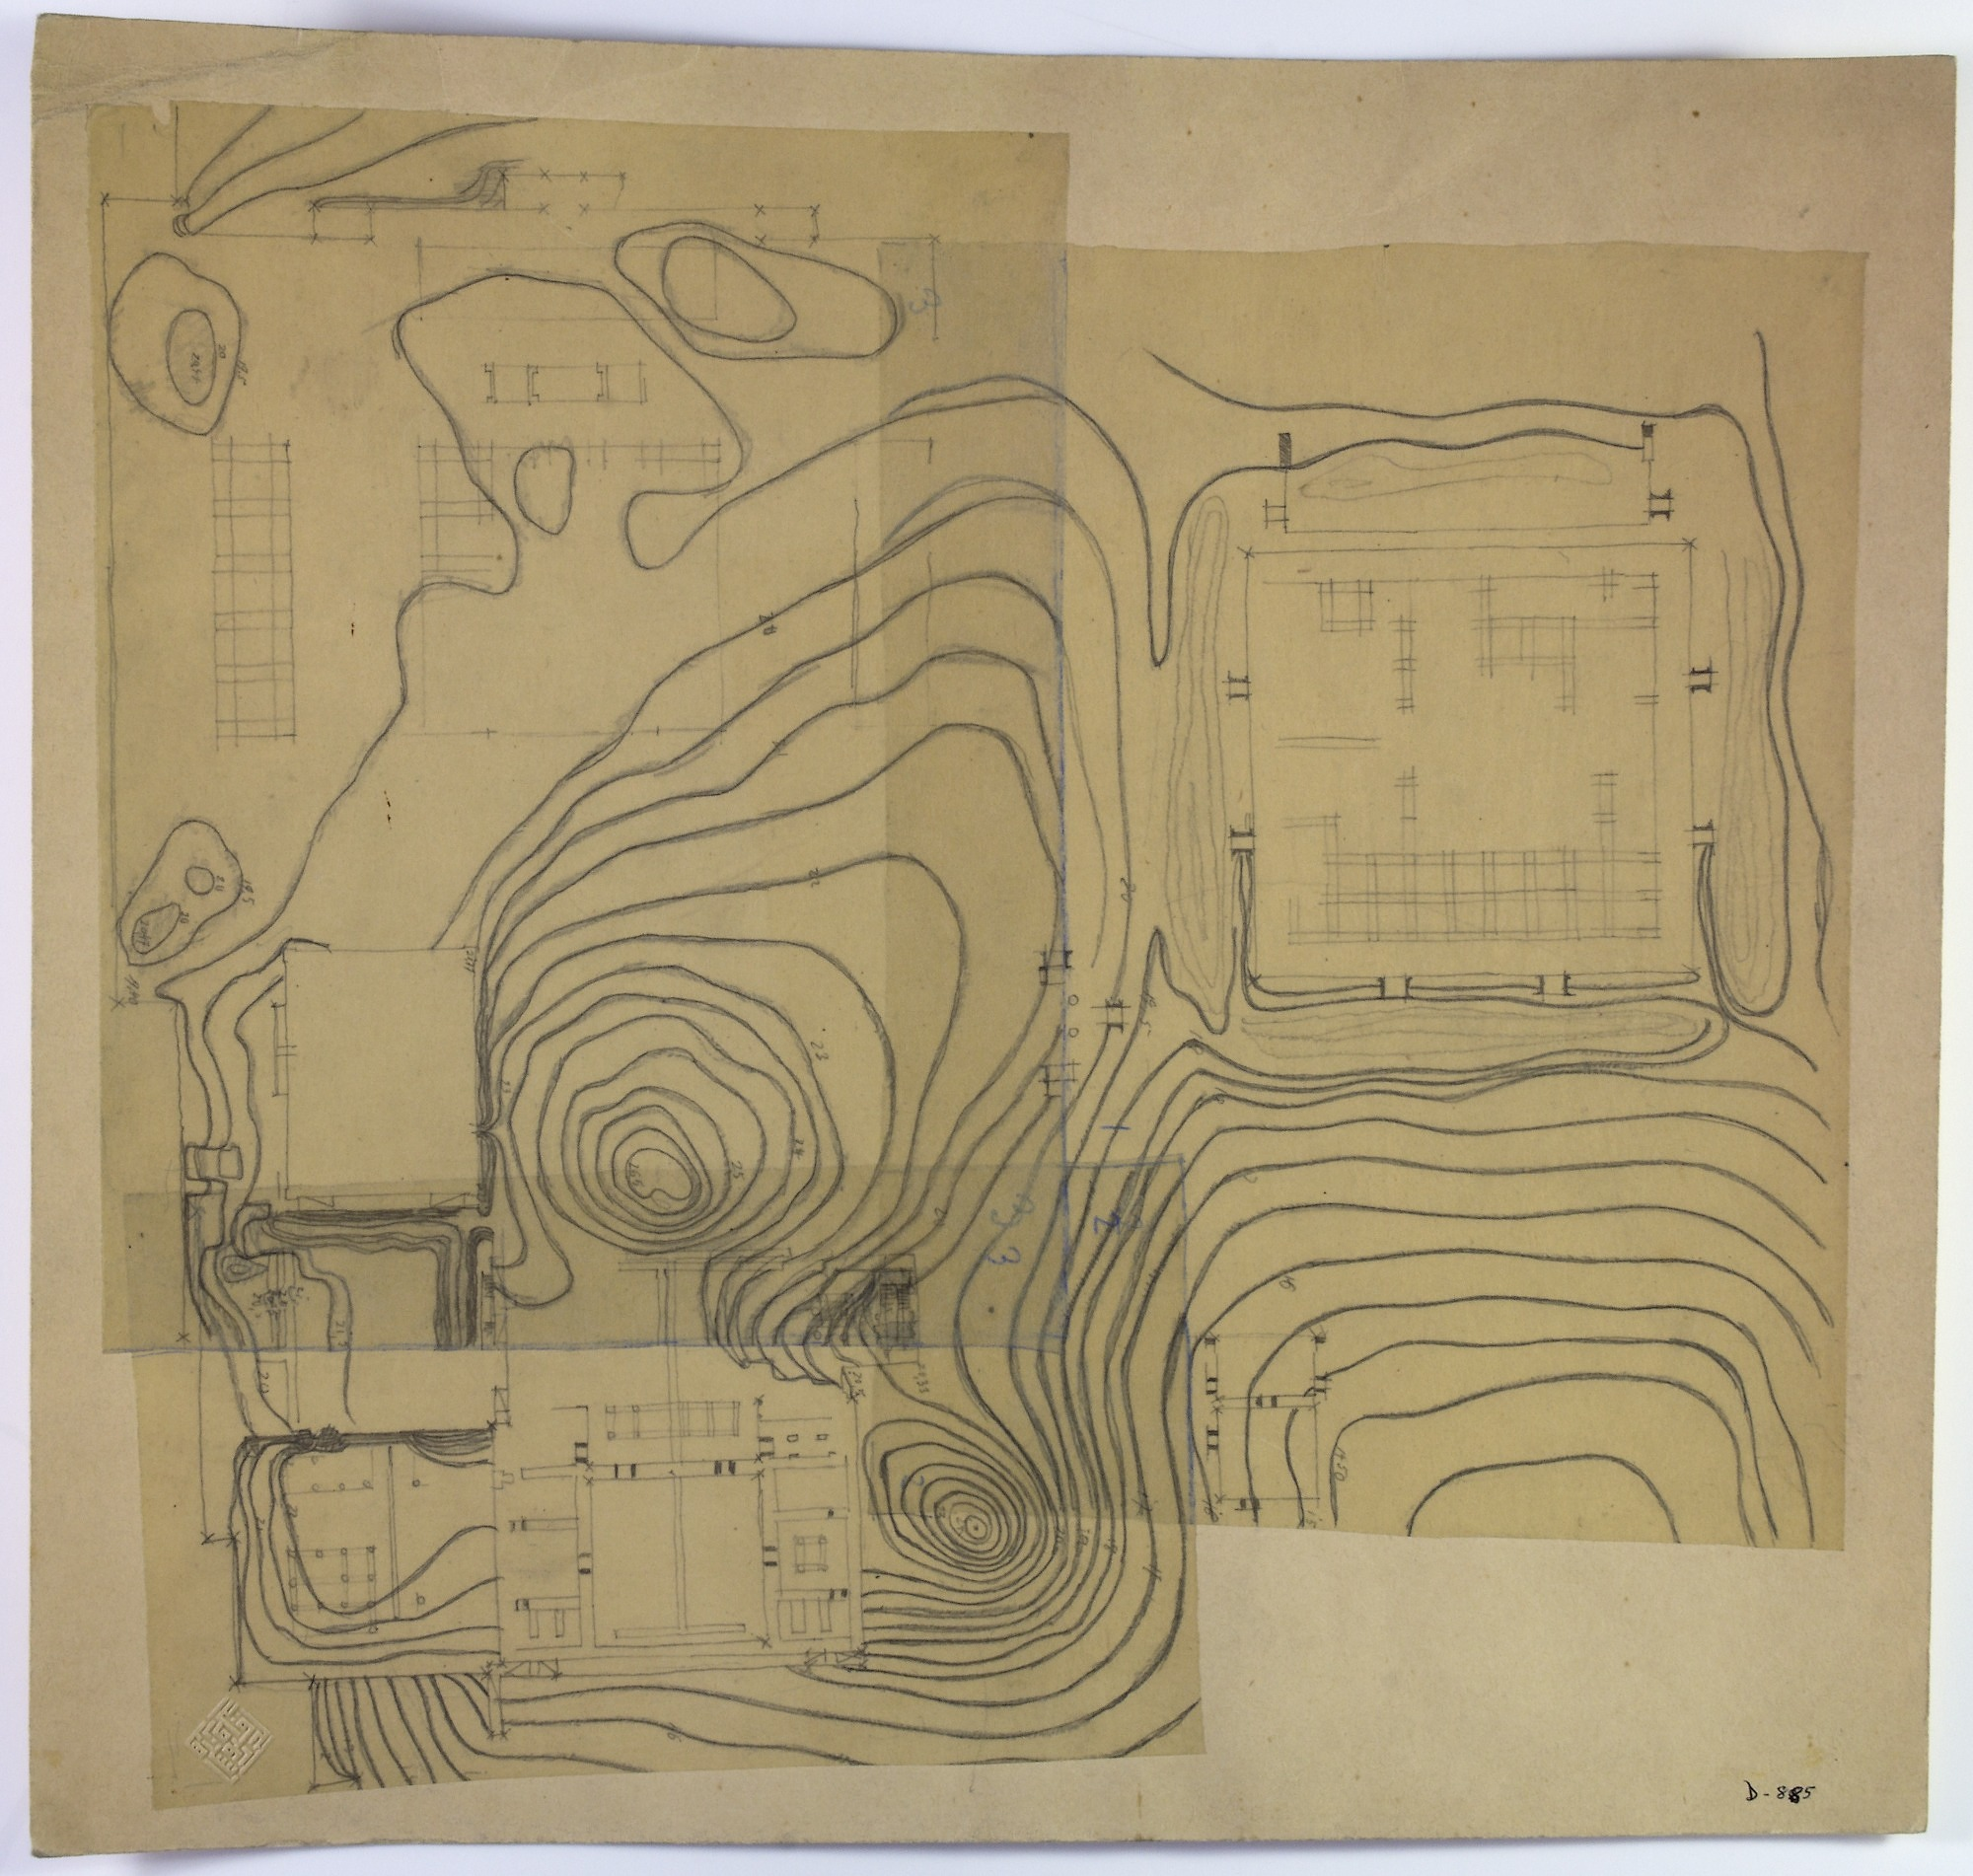 images for Excavation of Persepolis (Iran): Terrace Complex: Preliminary Ground Plan drawing